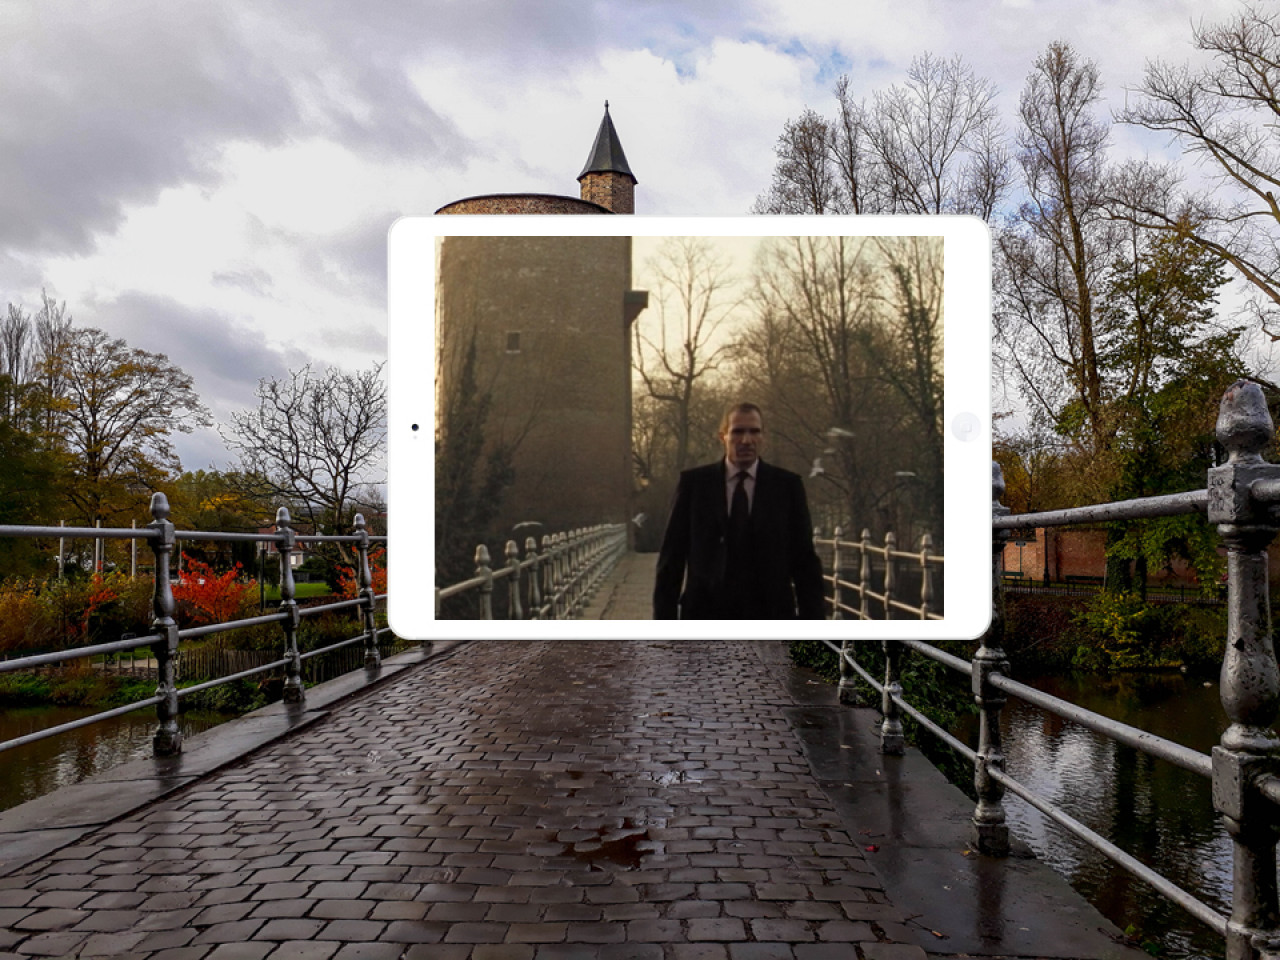 However, Ken fails and Harry has to do it himself. When he arrives in Bruges, he enters the city via the Minnewater bridge.